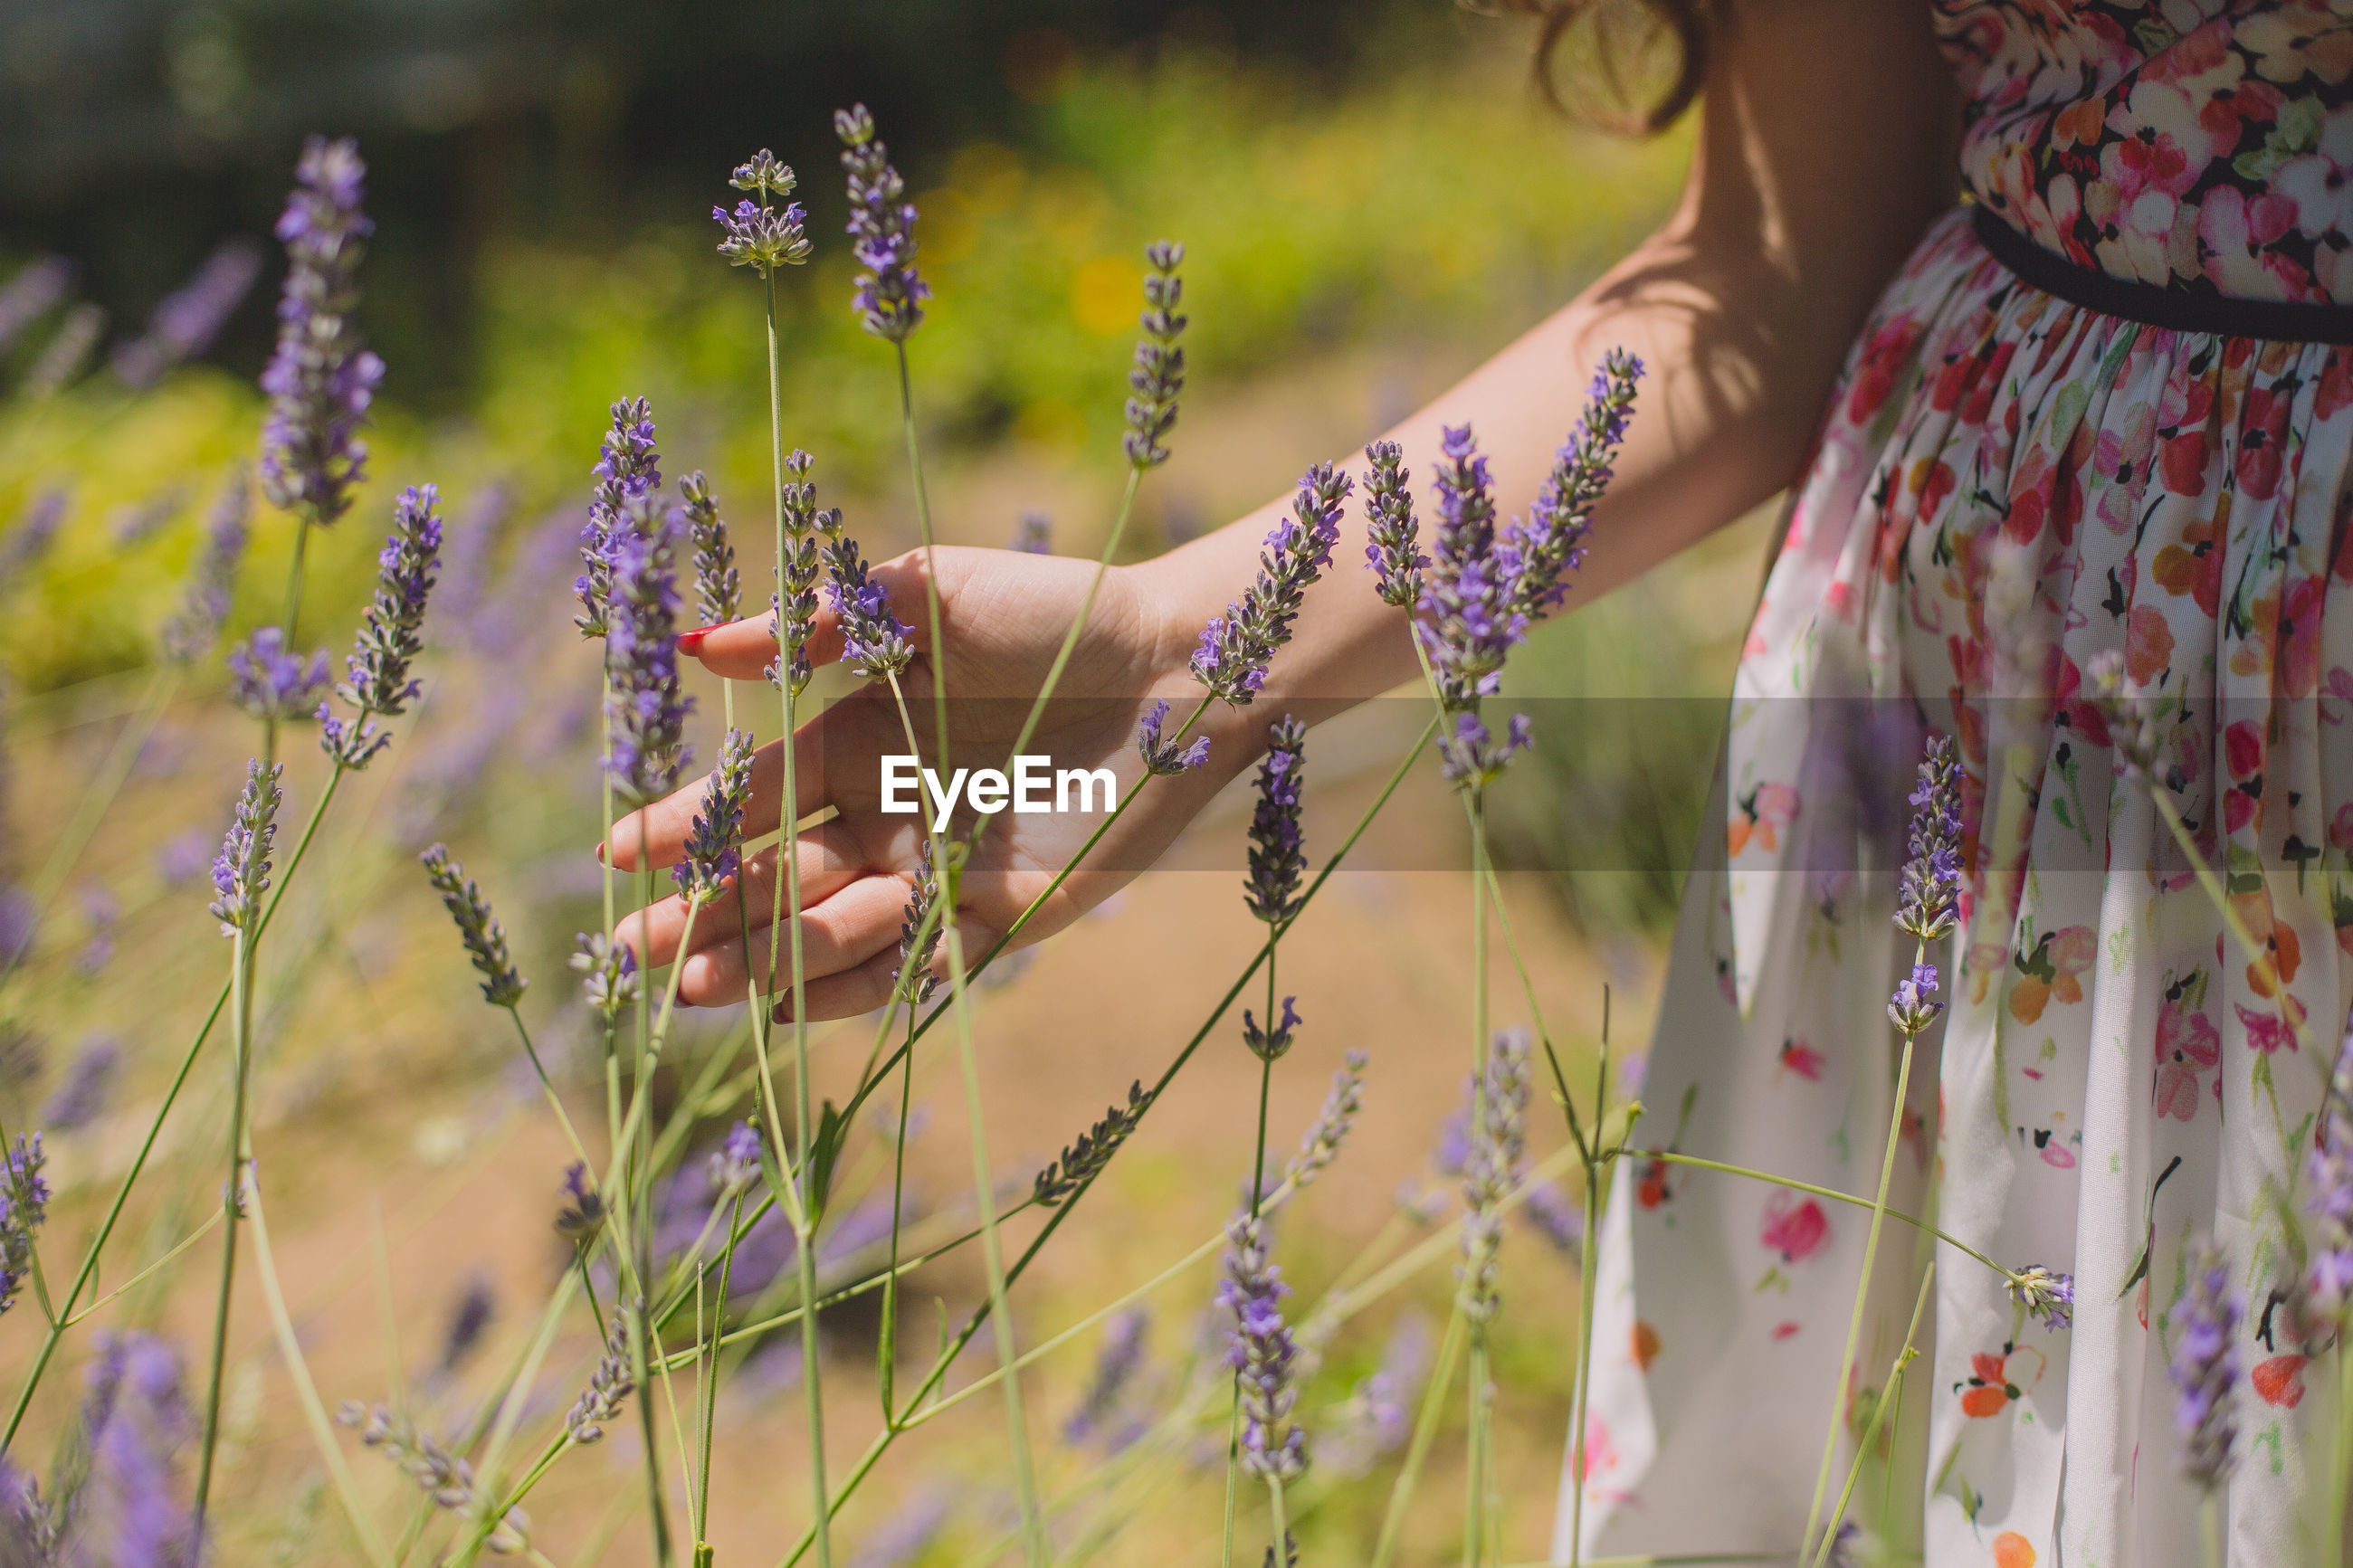 Midsection of woman touching flowering plants on field